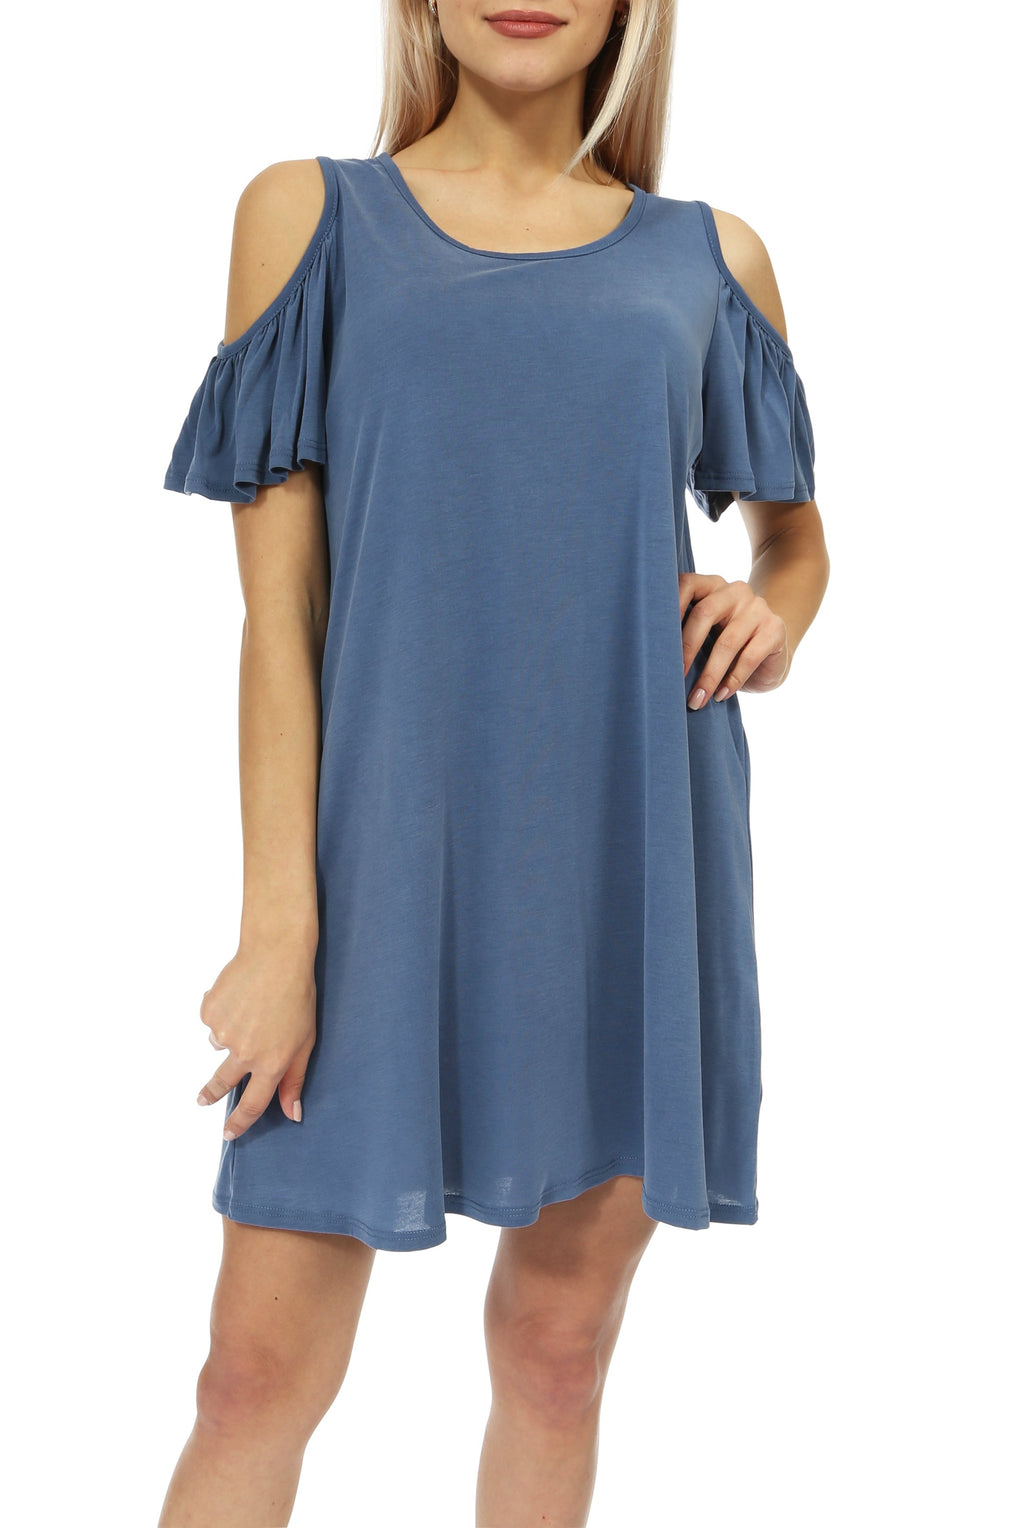 Teeze Me | Short Sleeve Scoop Neck Cold Shoulder Swing T-Shirt Dress | Blue